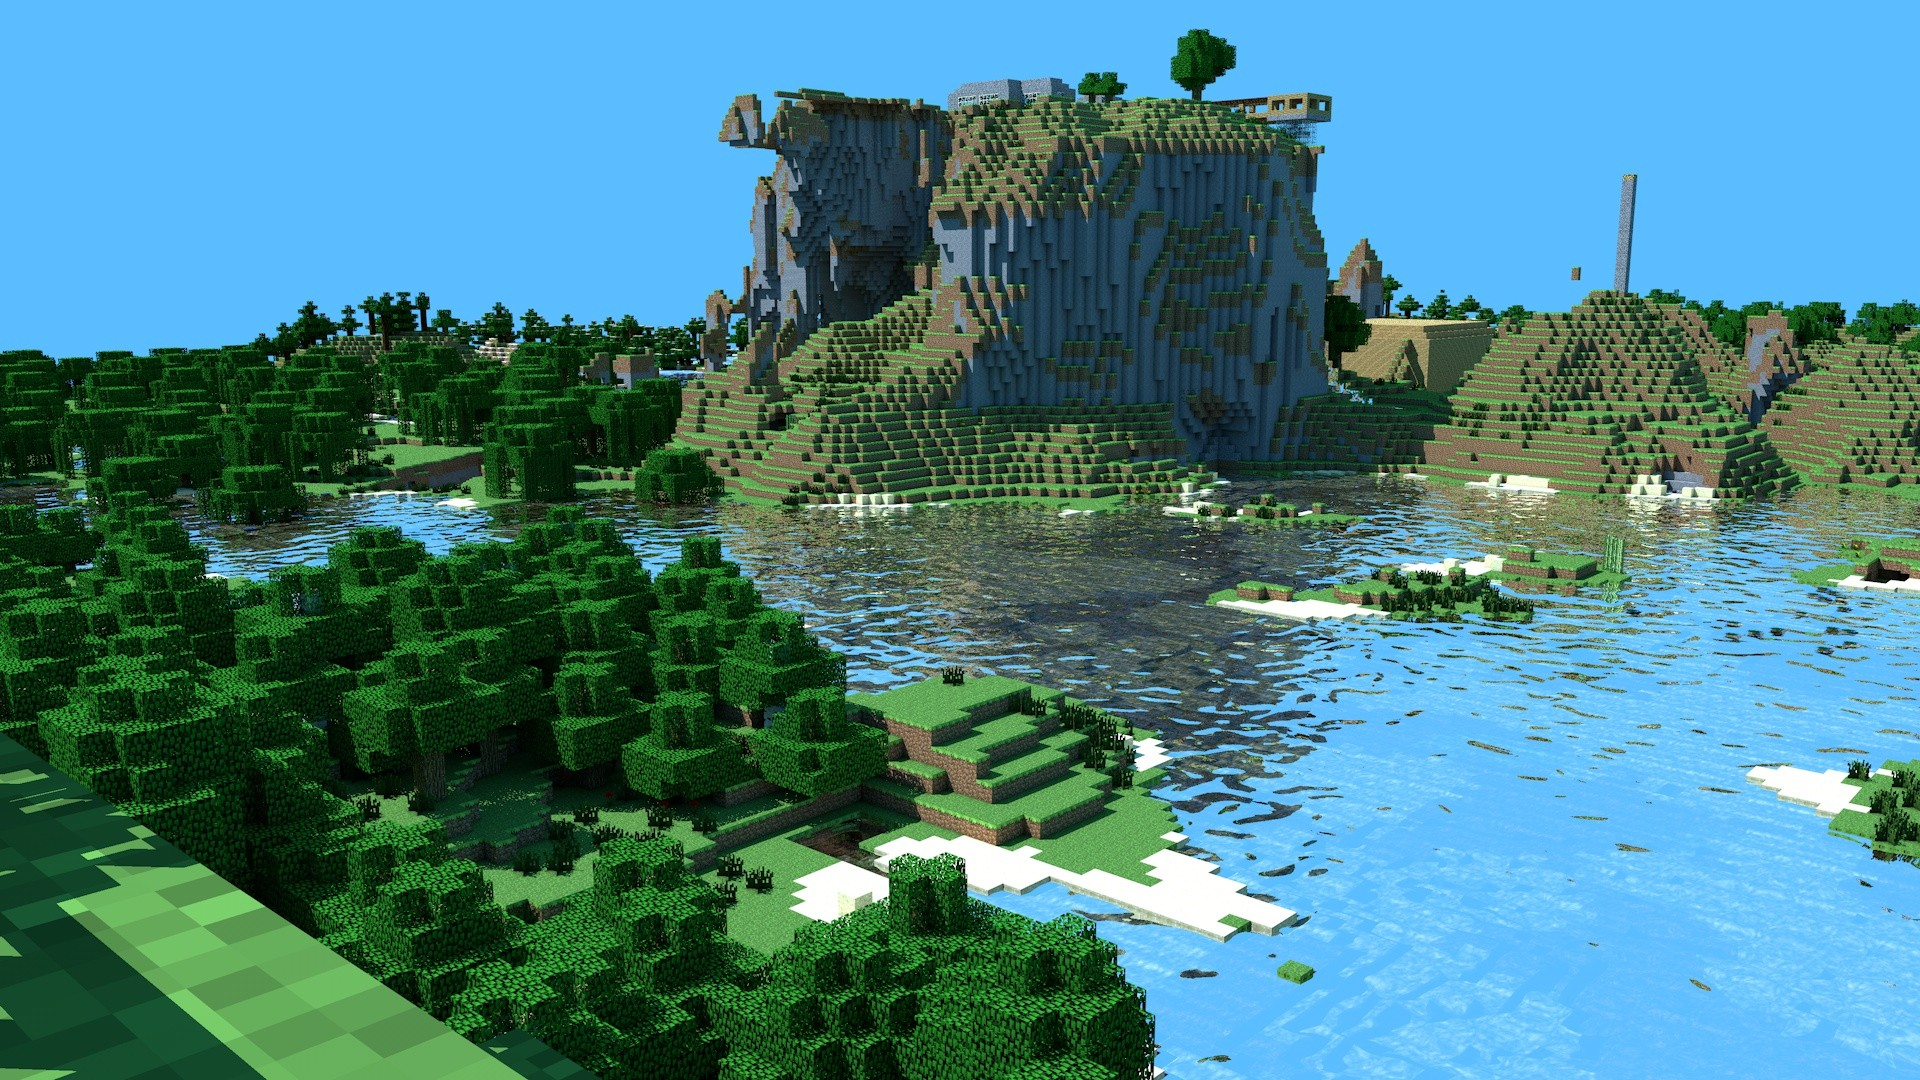 hd s minecraft wallpaper